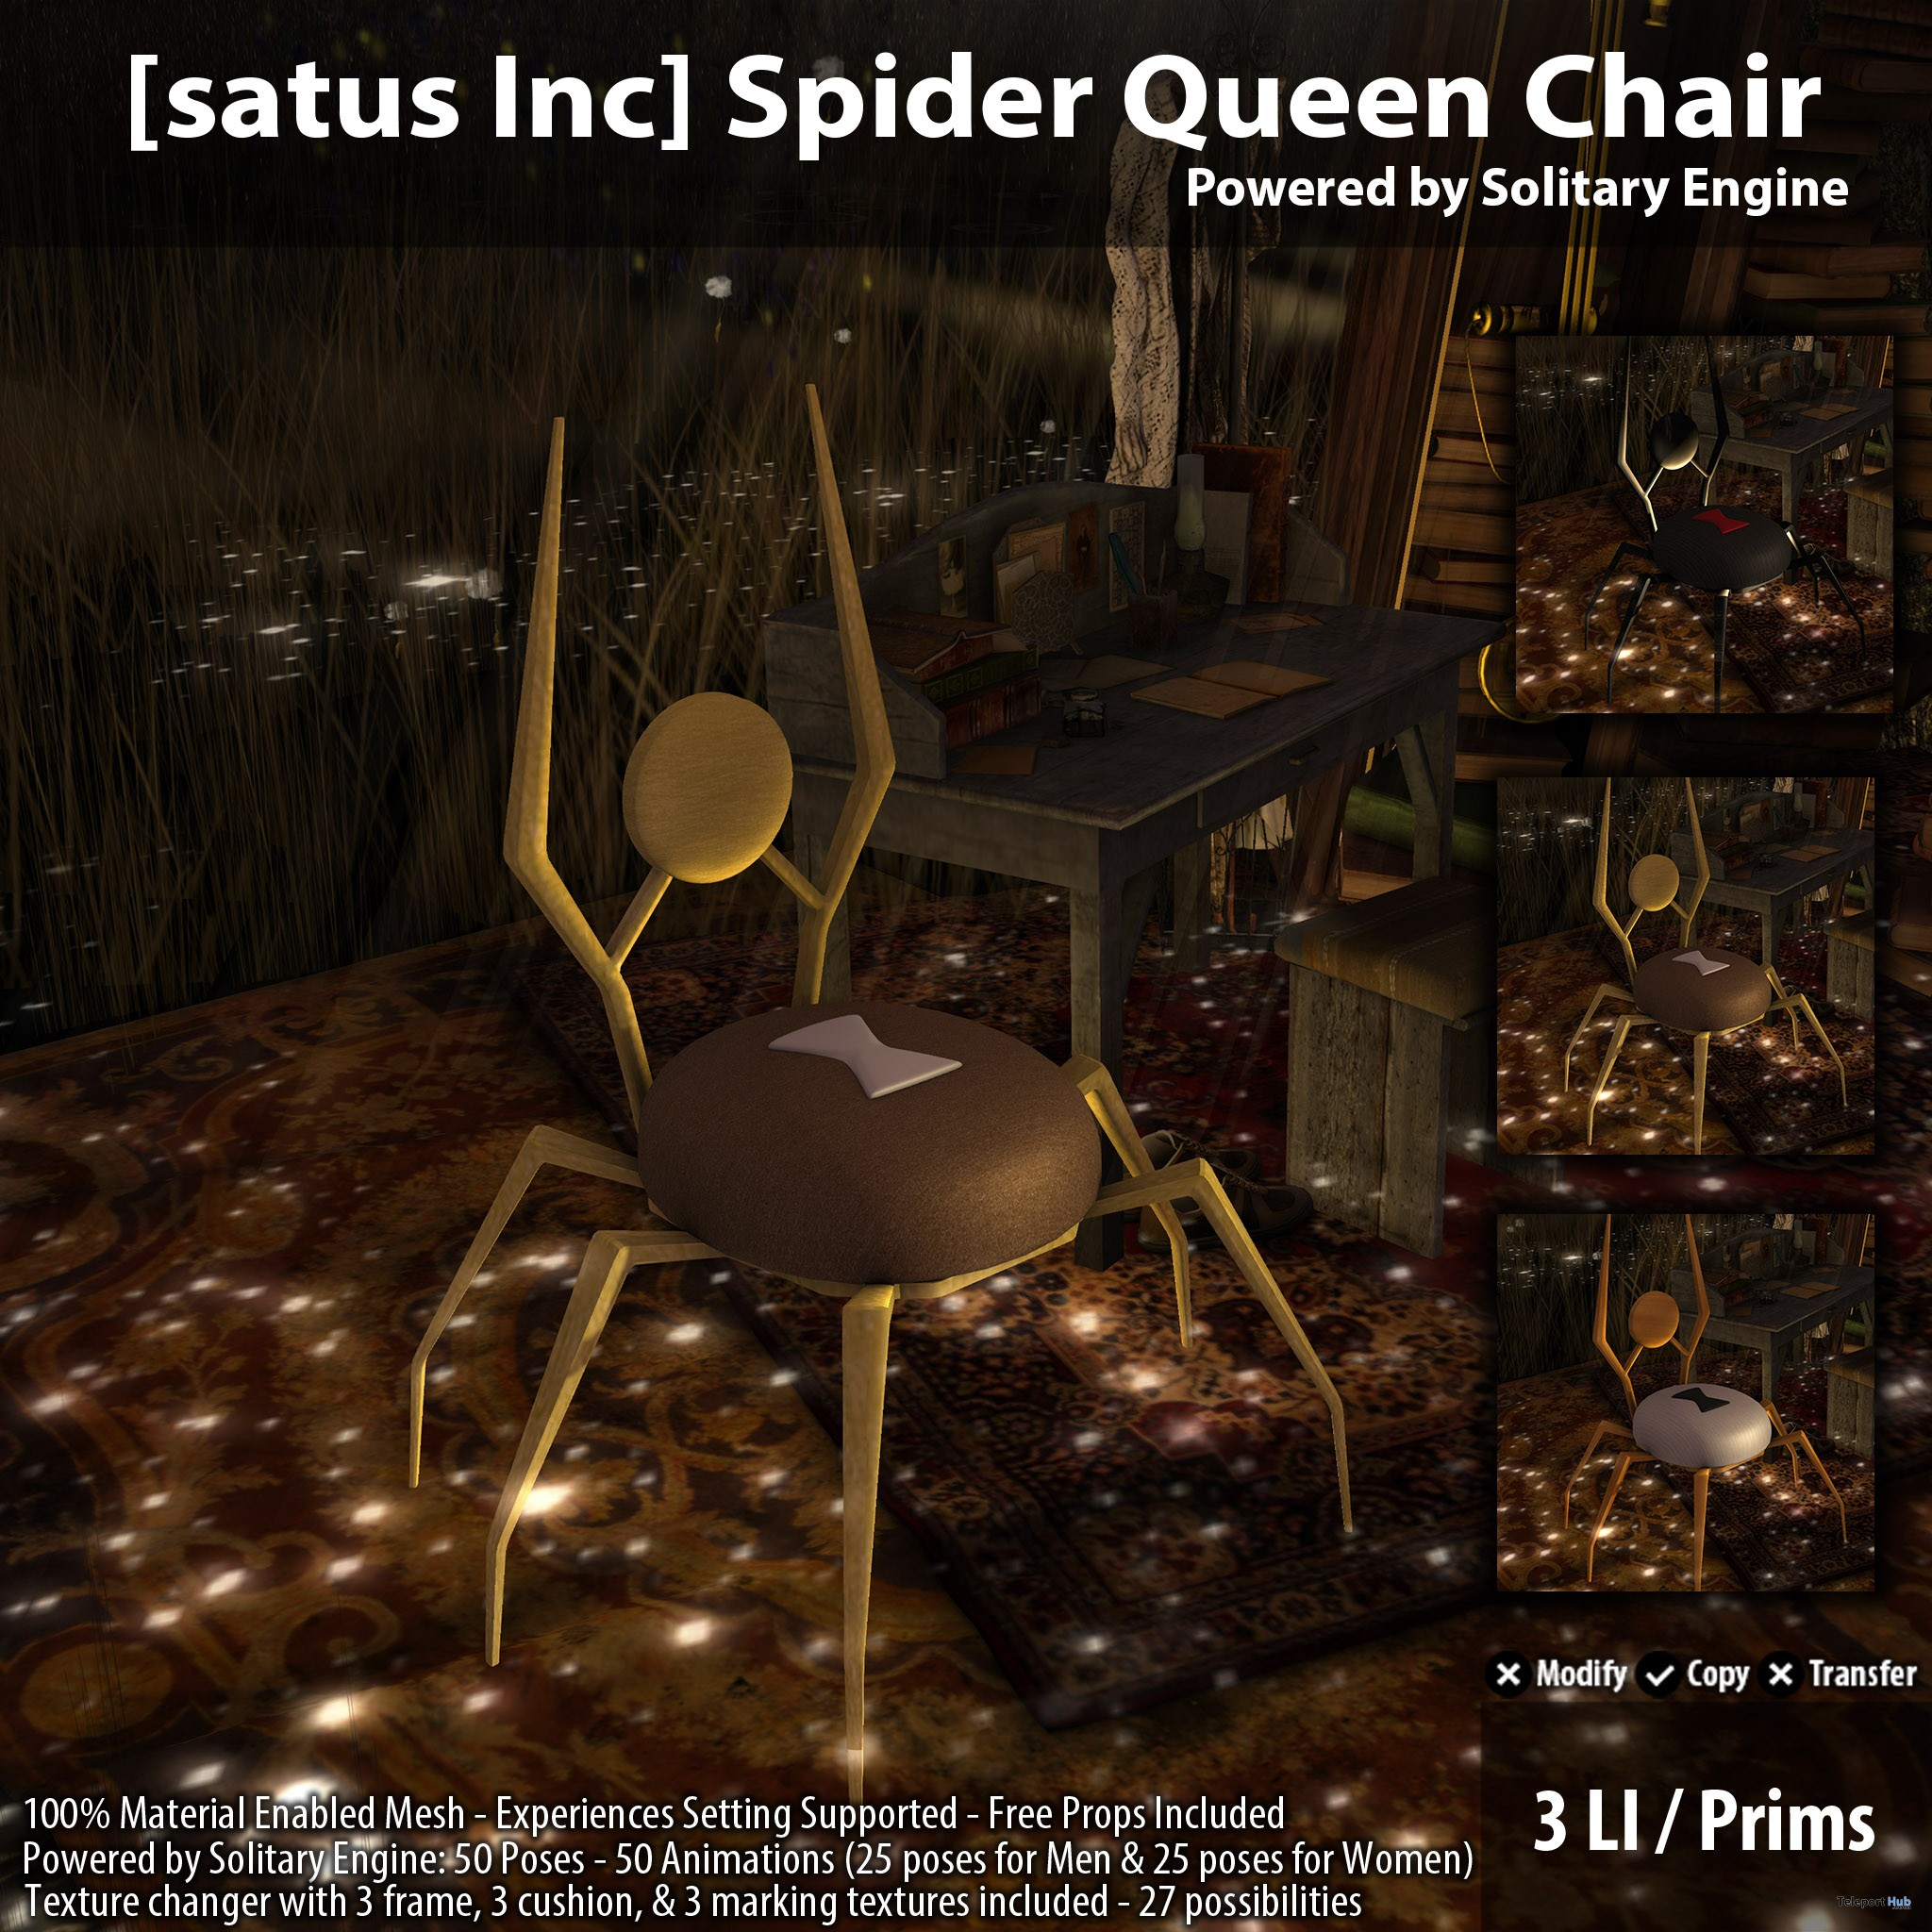 New Release: Spider Queen Chair by [satus Inc] - Teleport Hub - teleporthub.com